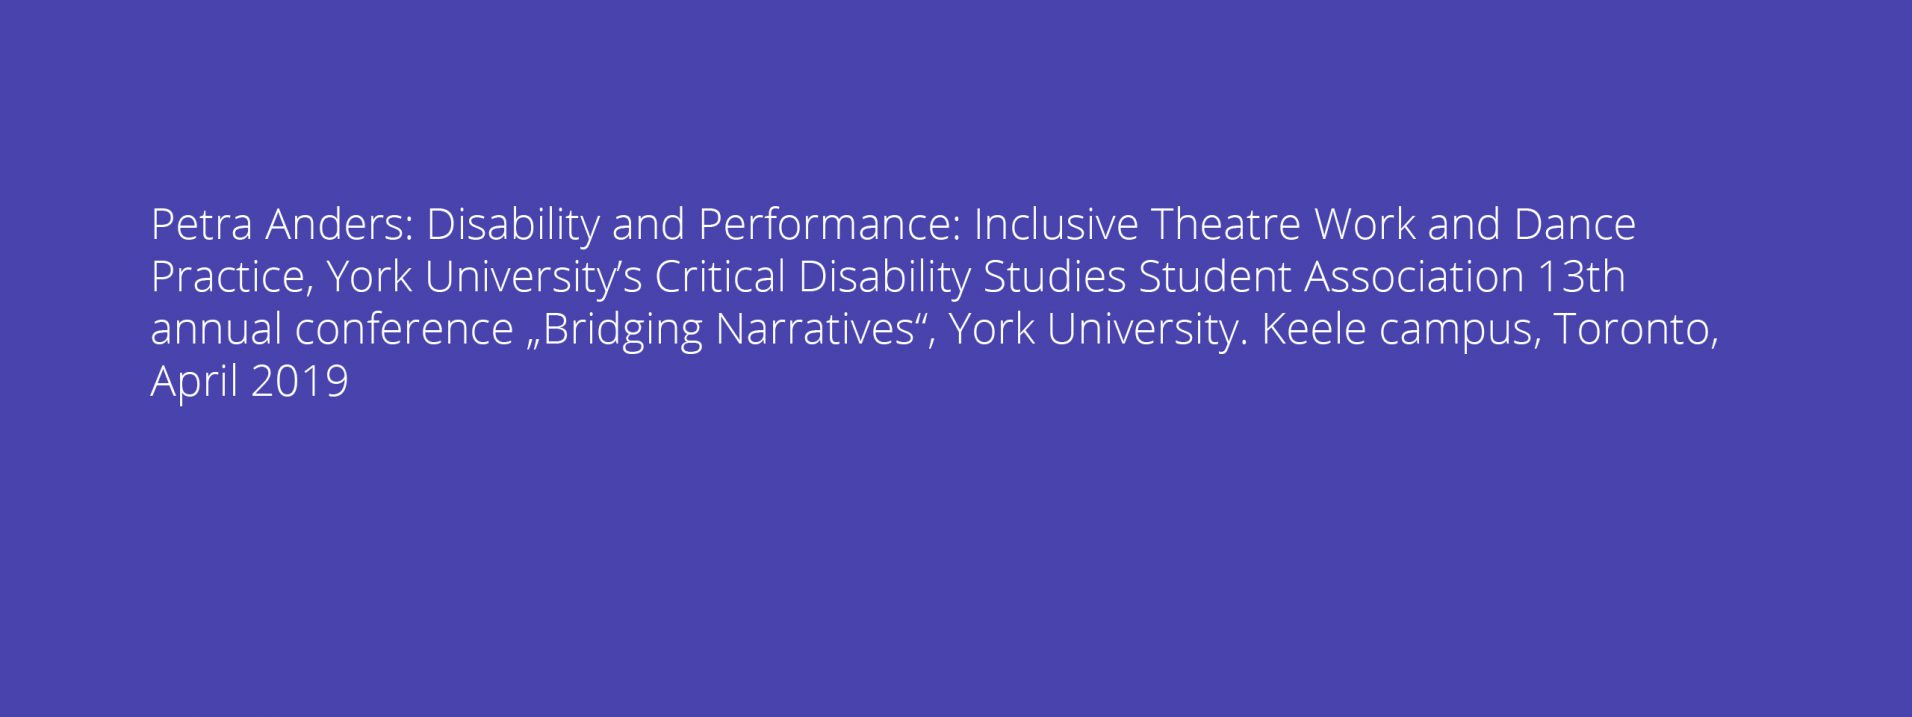 "Petra Anders: Disability and Performance: Inclusive Theatre Work and Dance Practice, York University's Critical Disability Studies Student Association 13th annual conference ""Bridging Narratives"", York University. Keele campus, Toronto, April 2019"